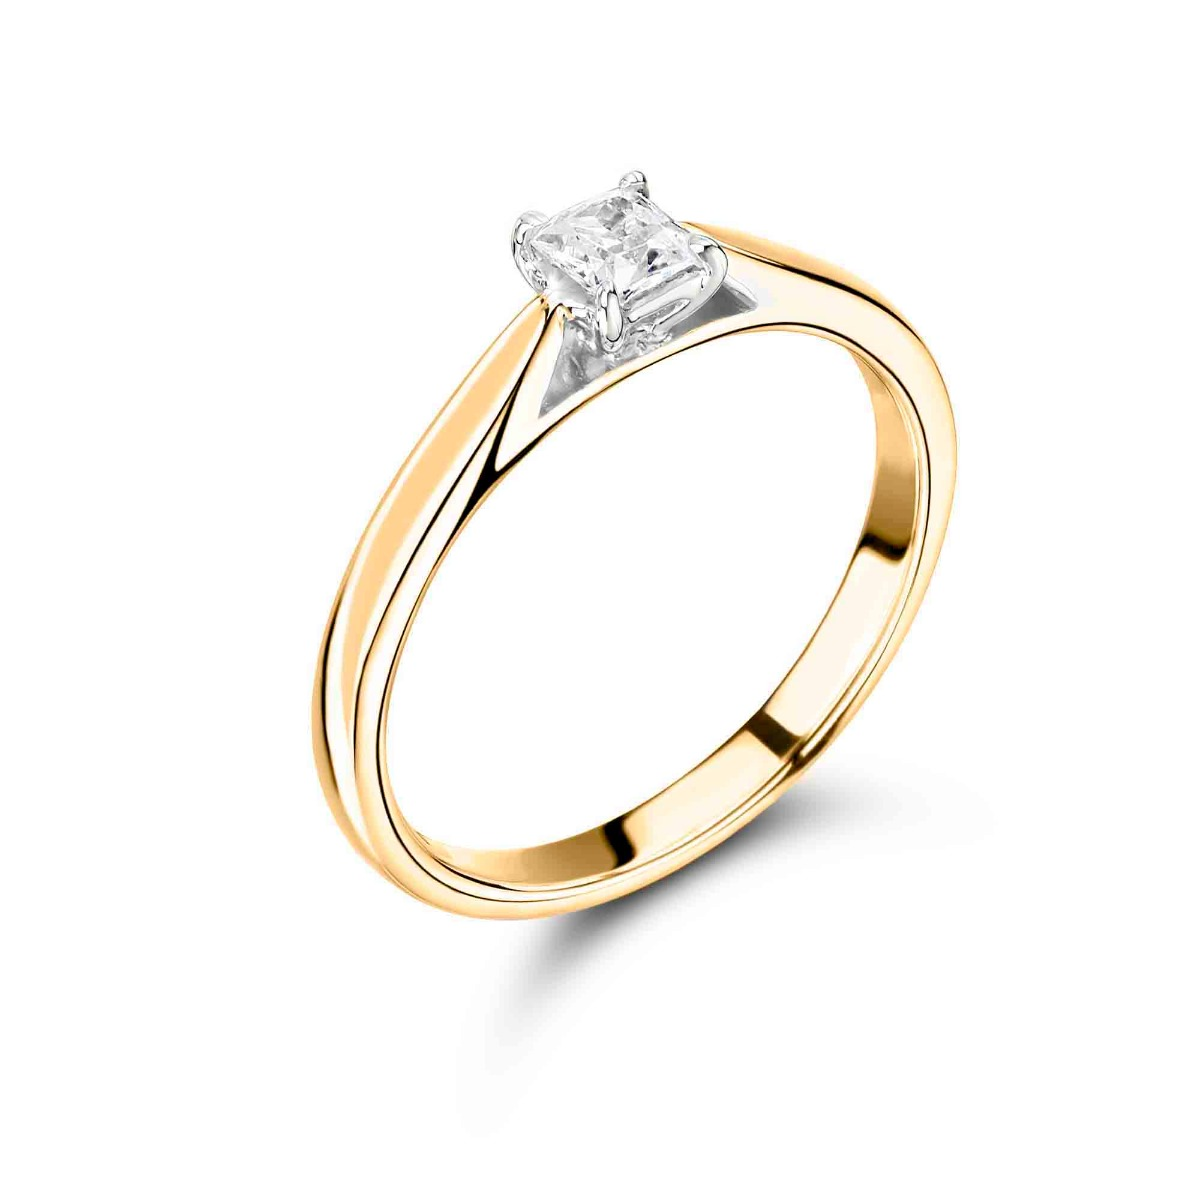 0.95ct Abigail Solitaire | Diamond Princess Solitaire Engagement Ring | 18K Yellow Gold